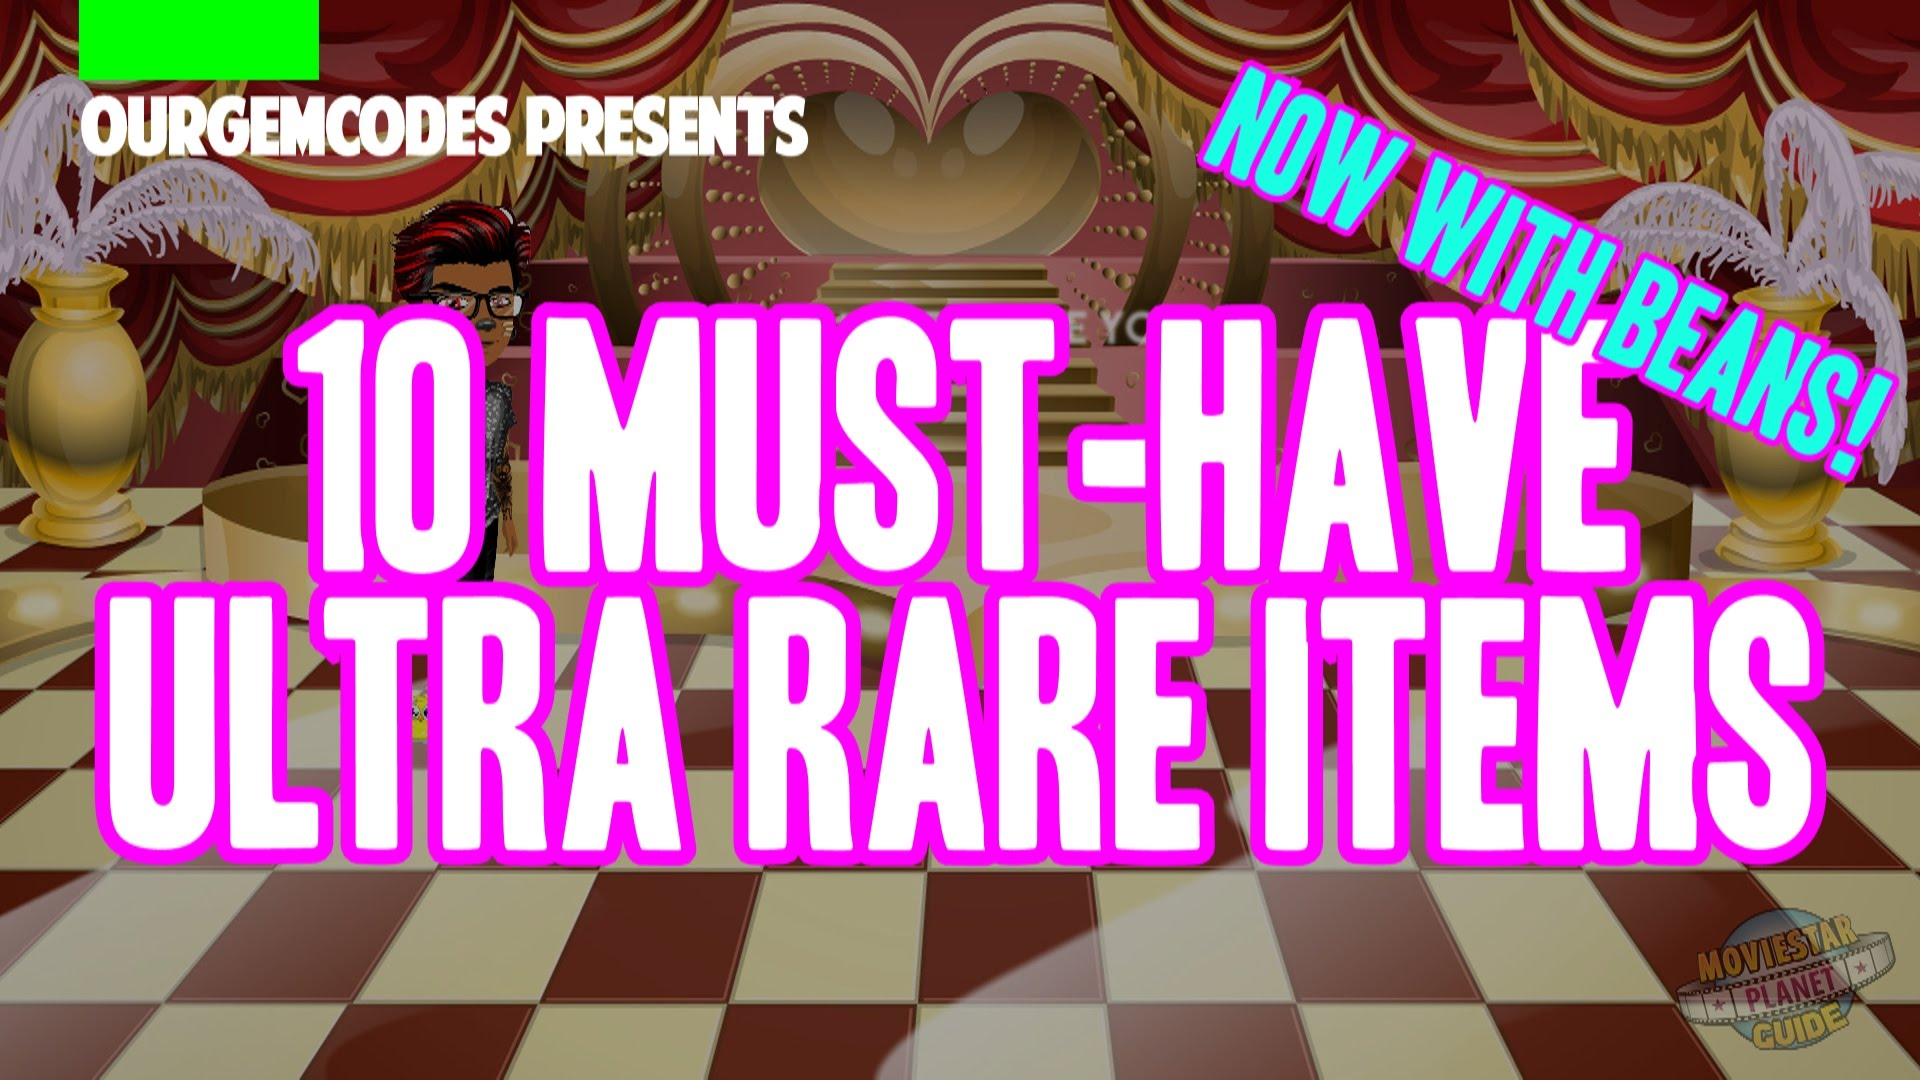 MSP | 10 MUST HAVE ULTRA RARE ITEMS | ourGemCodes